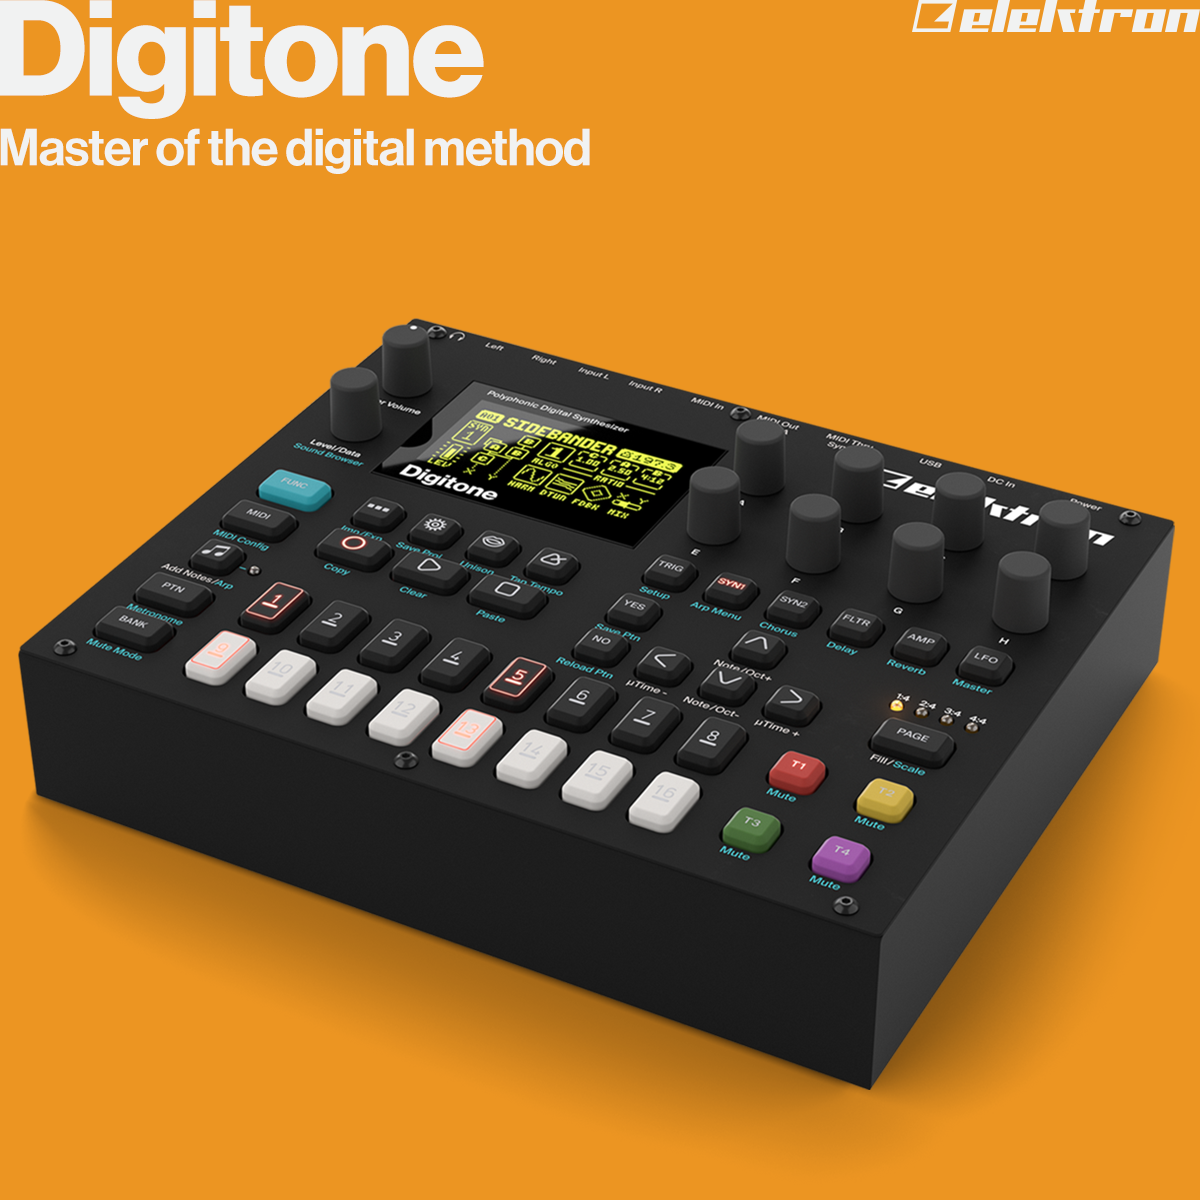 Digitone — Master of the digital method. Shipping now!